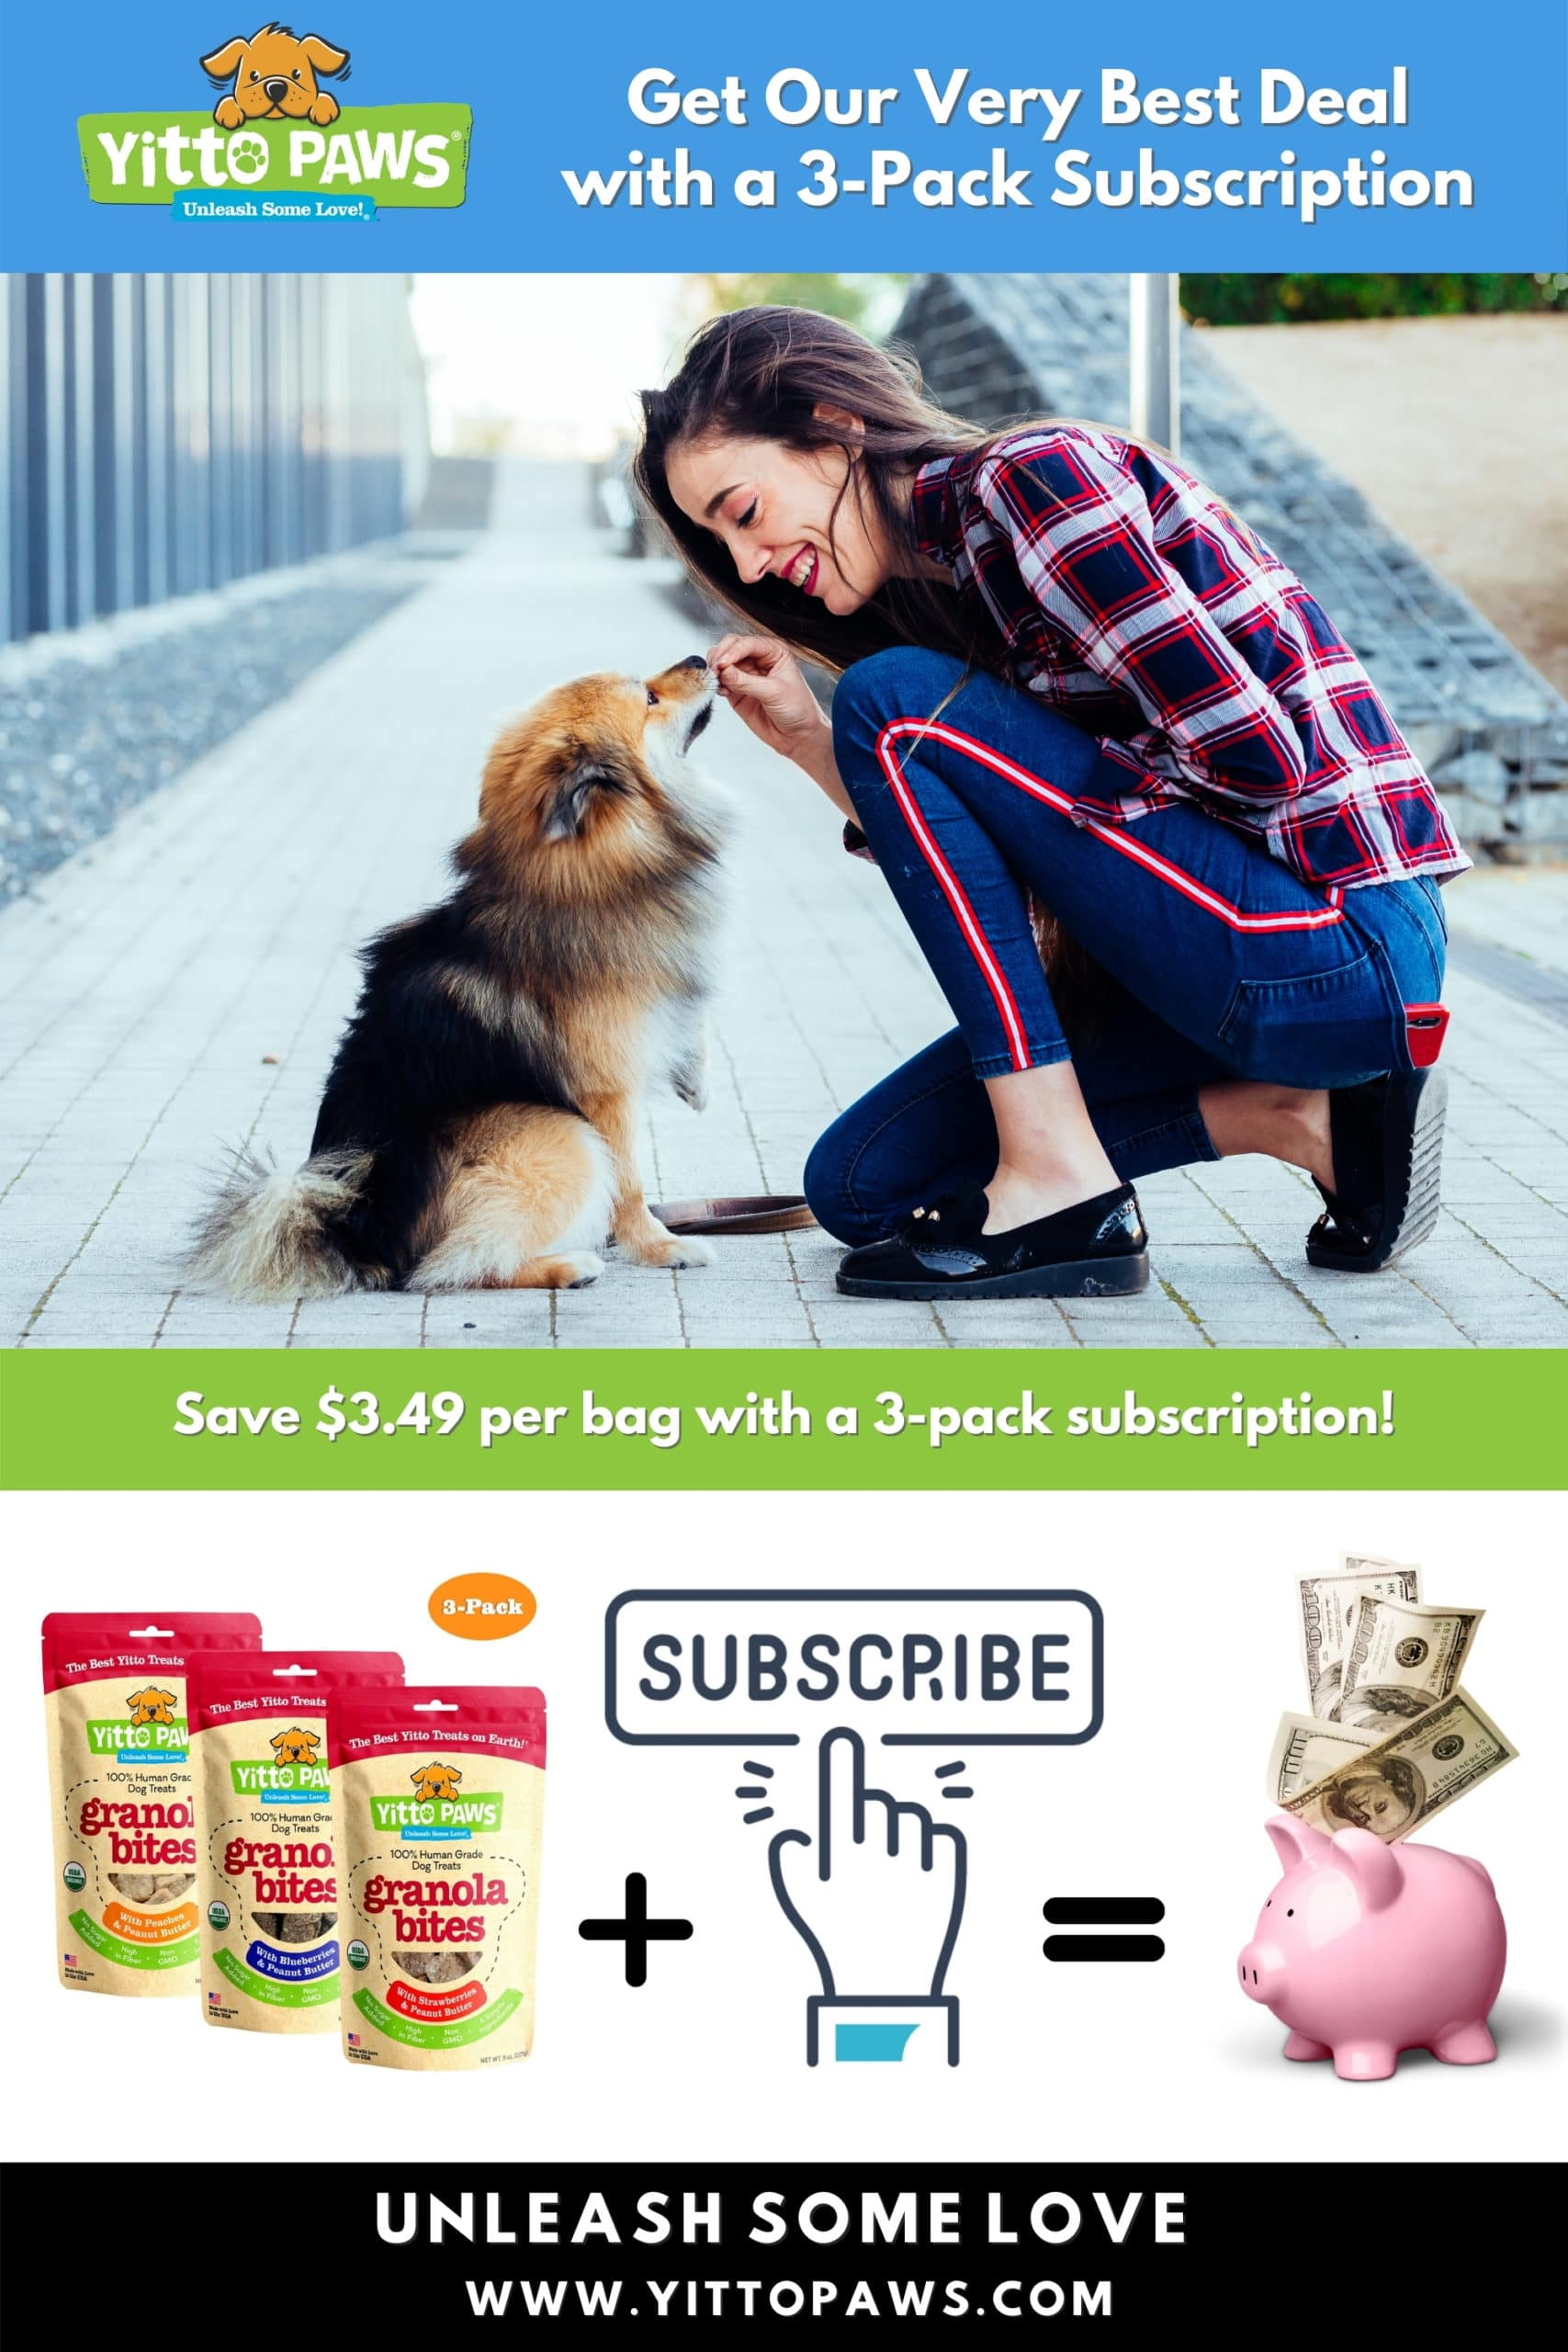 Get Our Best Deal with a 3-Pack Subscription of Yitto Paws organic dog treats!